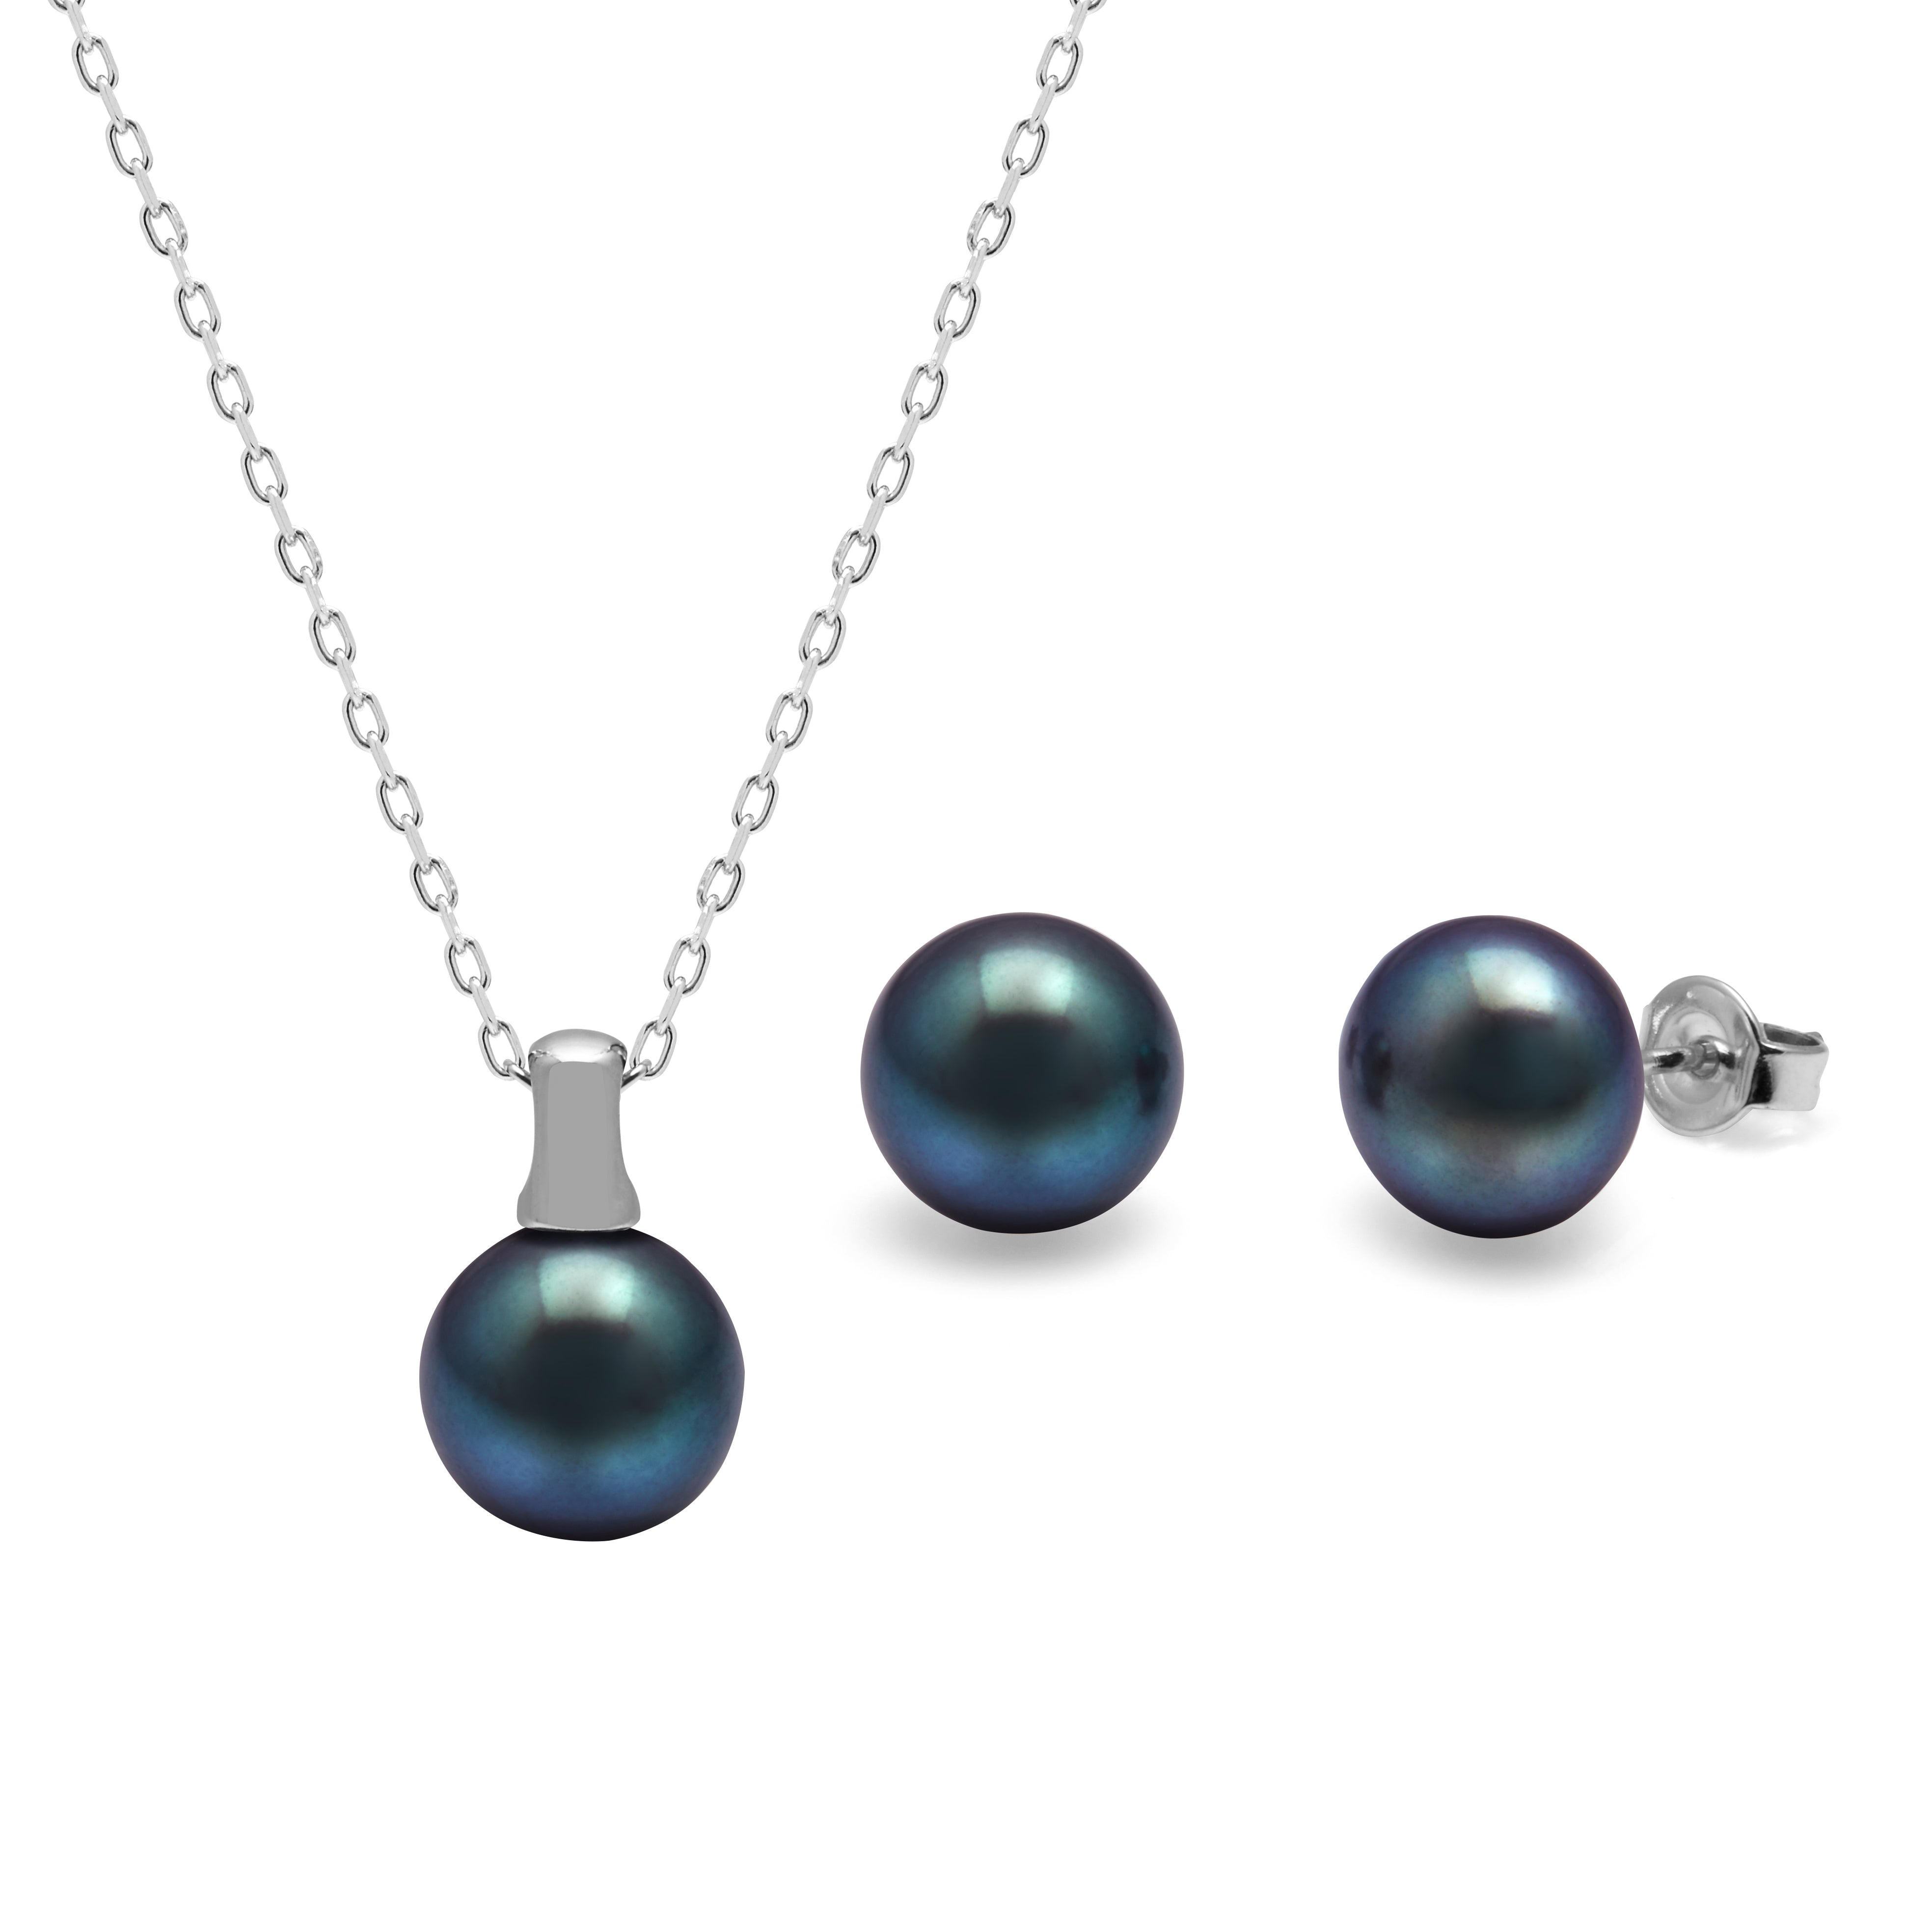 TKKP040 Kyoto Pearl Peacock Freshwater Pearl Set with Bale Pendant and Stud Earrings